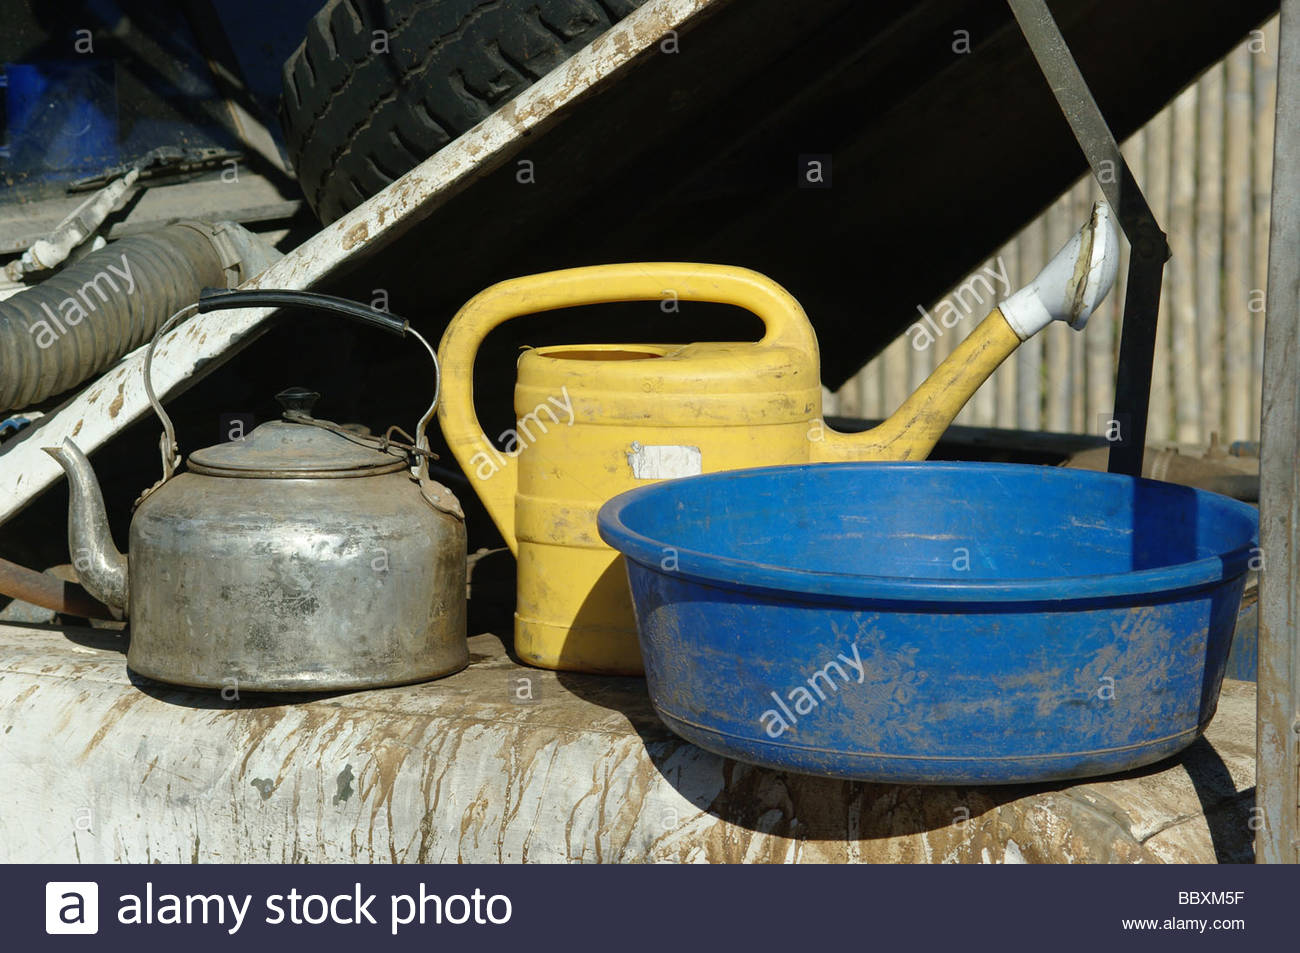 Washing and cooking camping equipment used by explorer Kypros in Mozambique Southern Africa Stock Photo